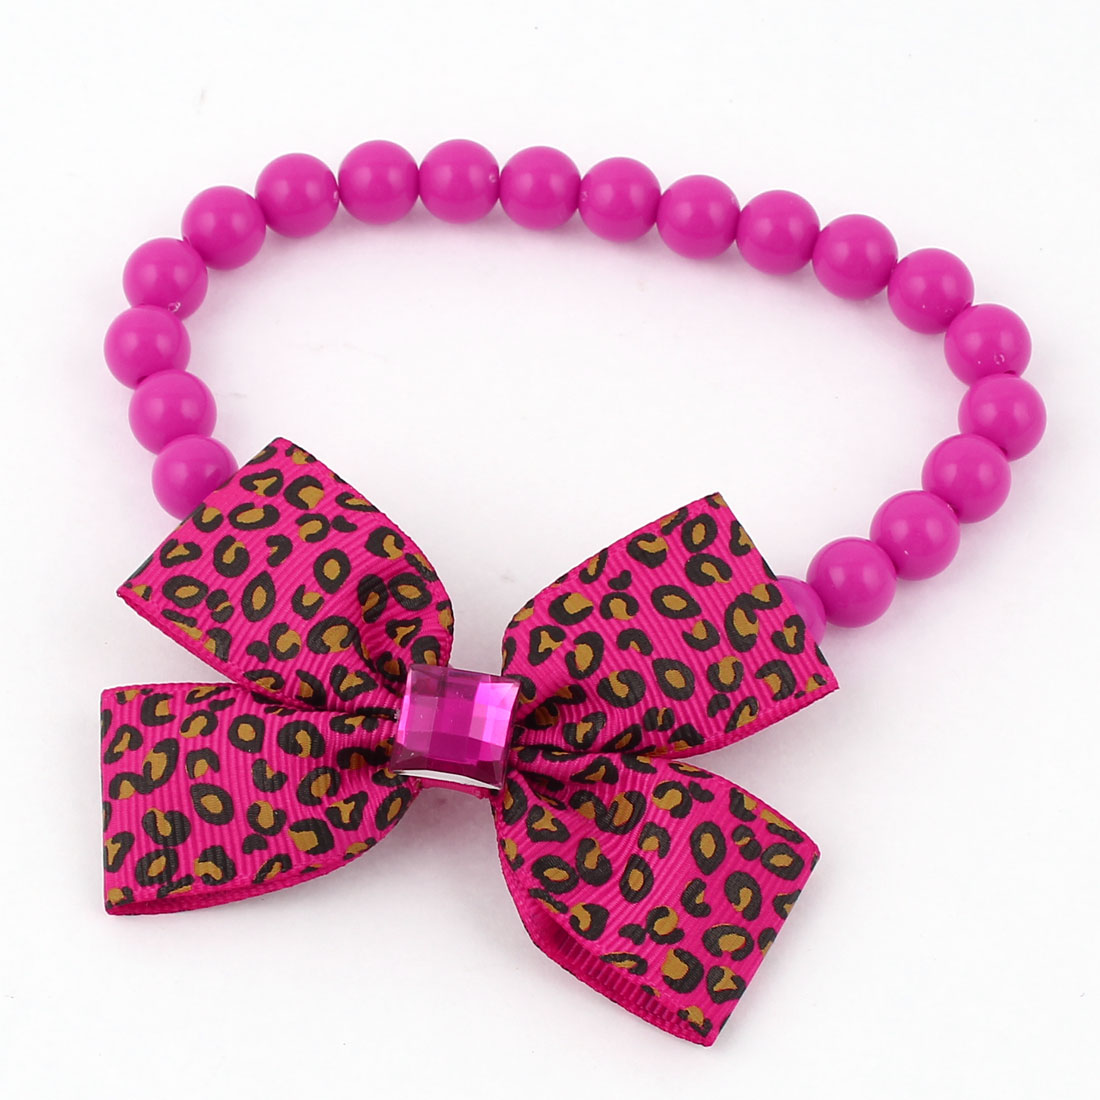 Faux Crystal Bowtie Accent Pet Dog Plastic Beads Collar Necklace Fuchsia M